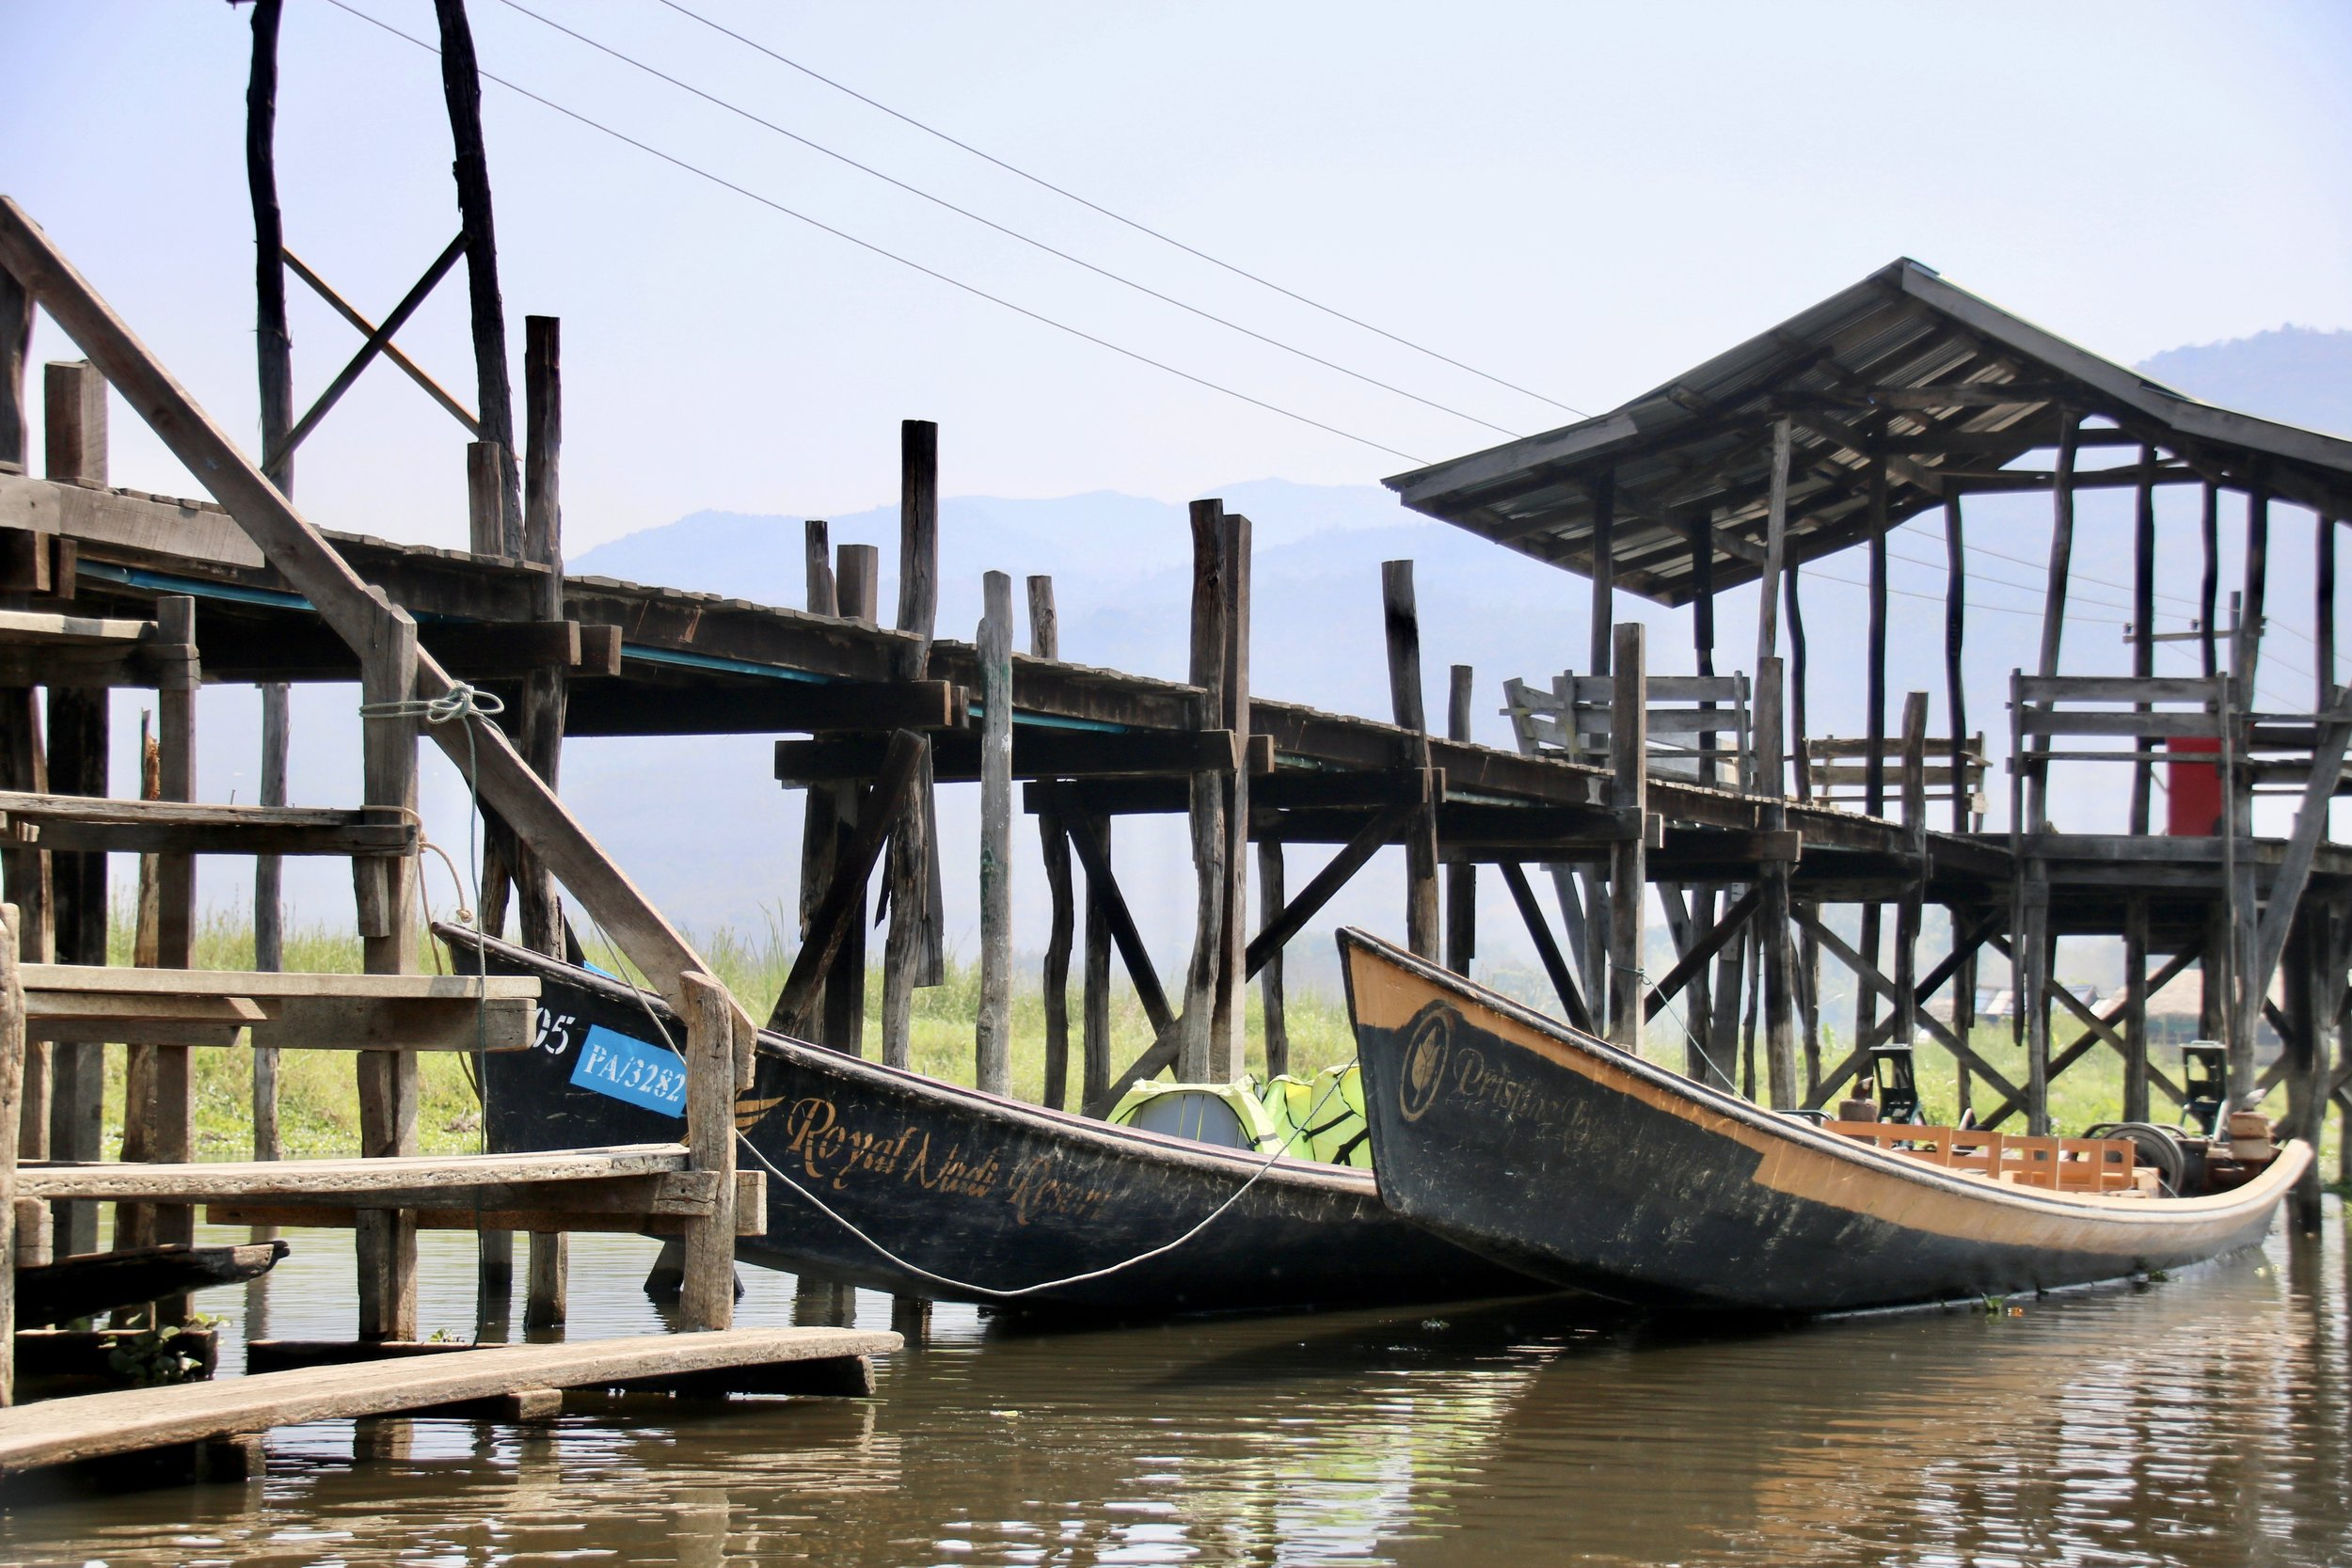 Boats on Inle Lake, Complete guide to Nyaungshwe